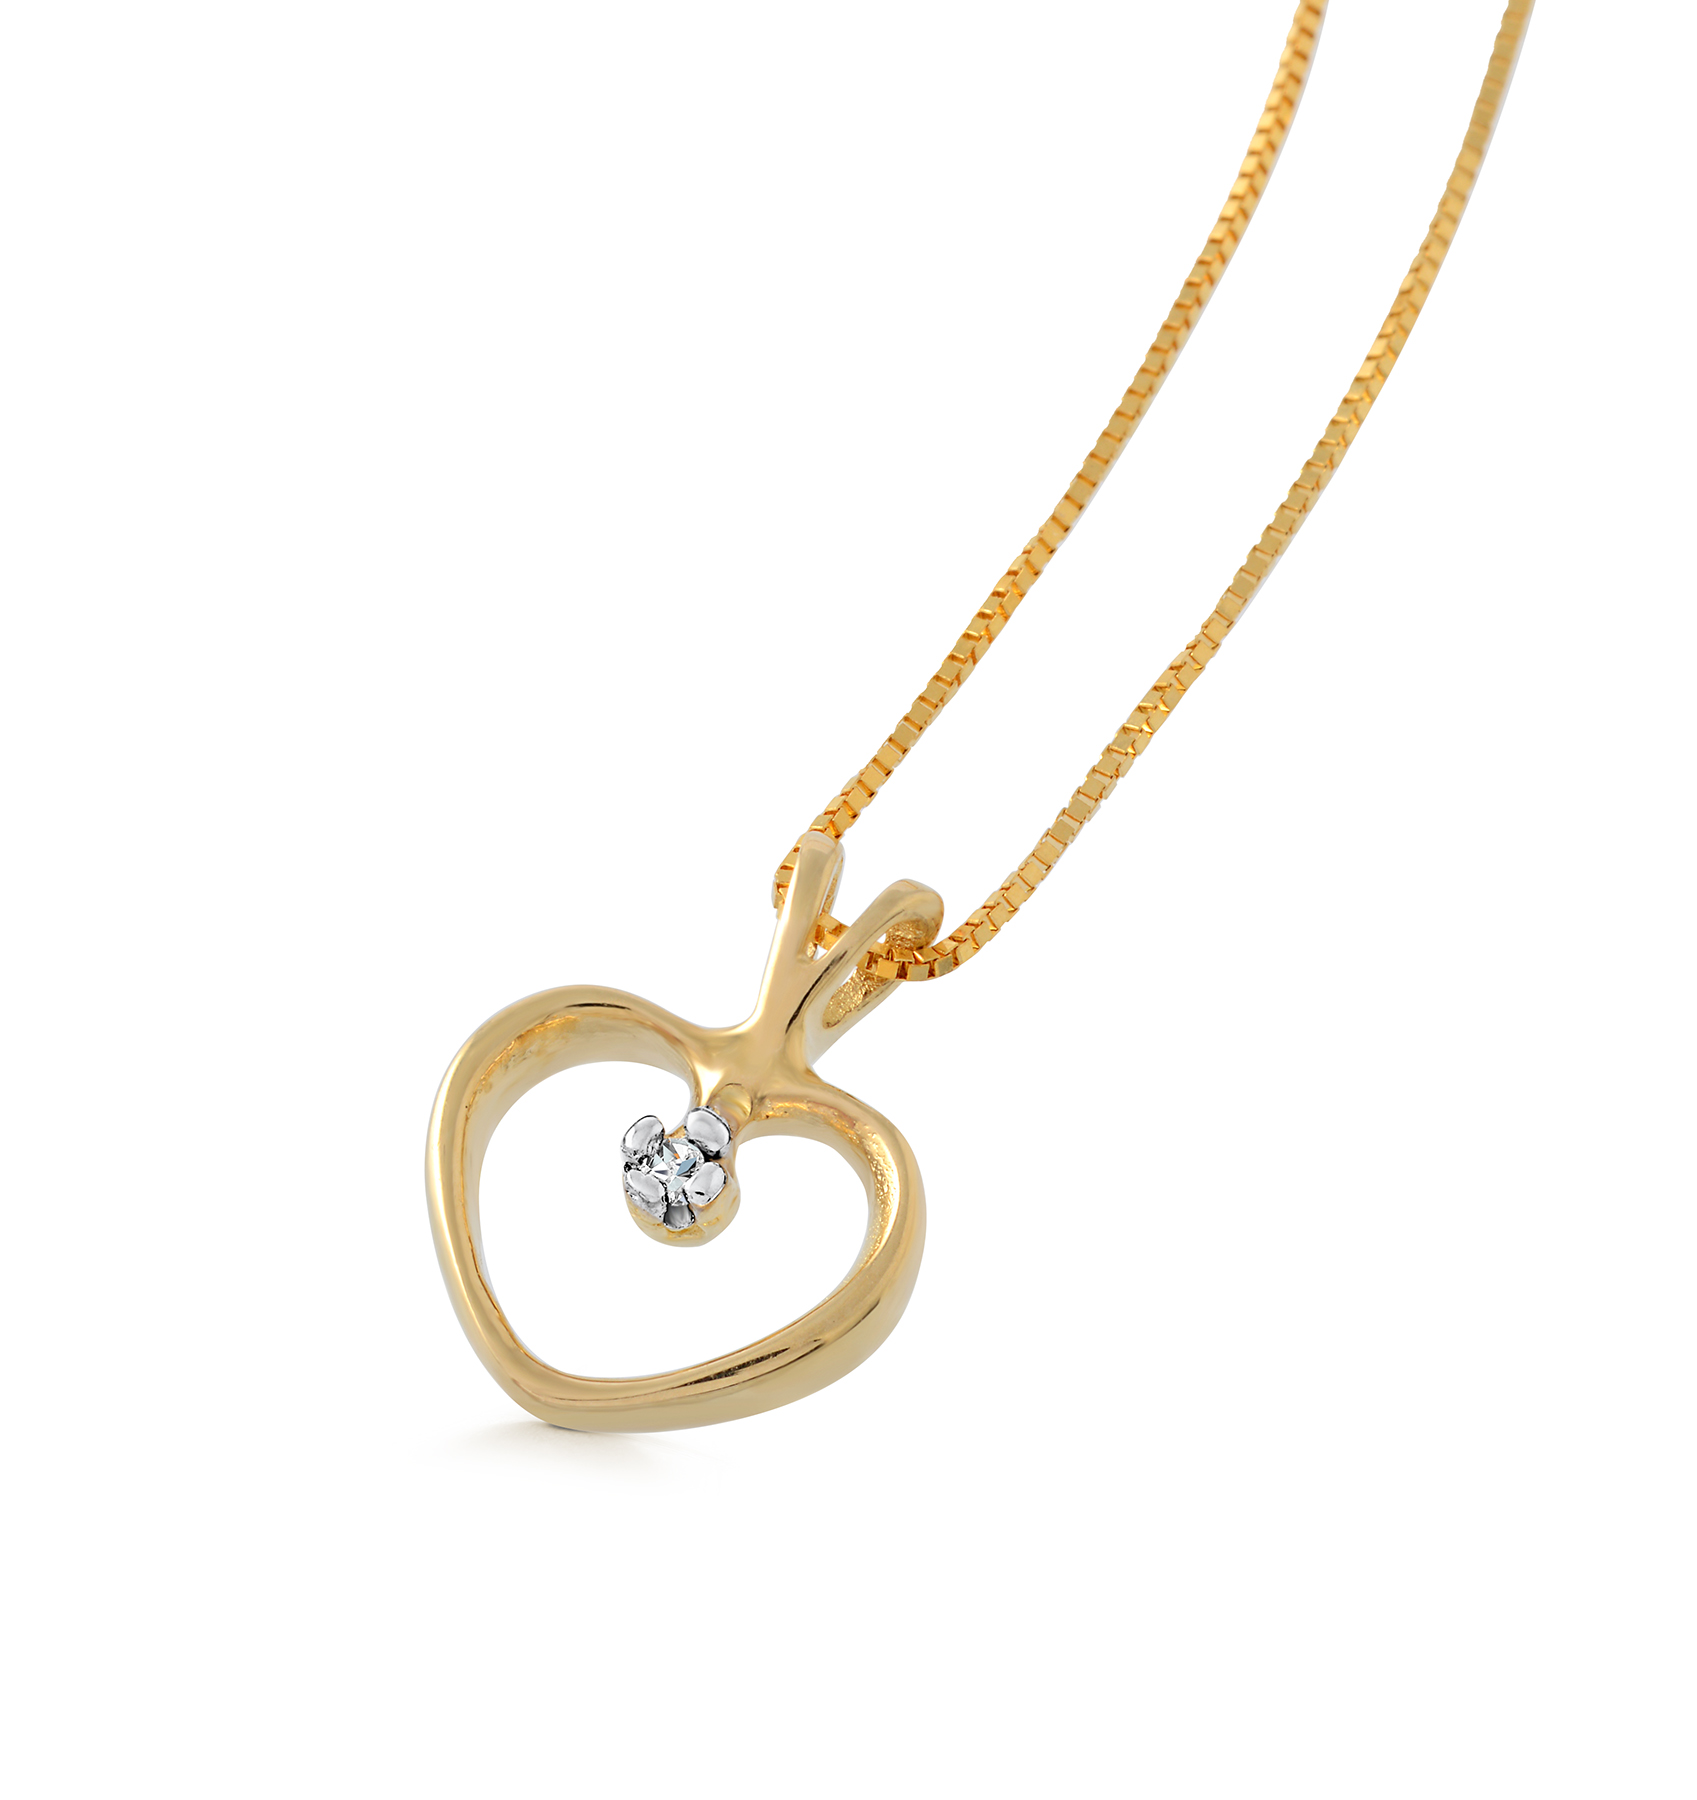 Small heart pendant with a diamond accent - in 10K yellow gold - chain included